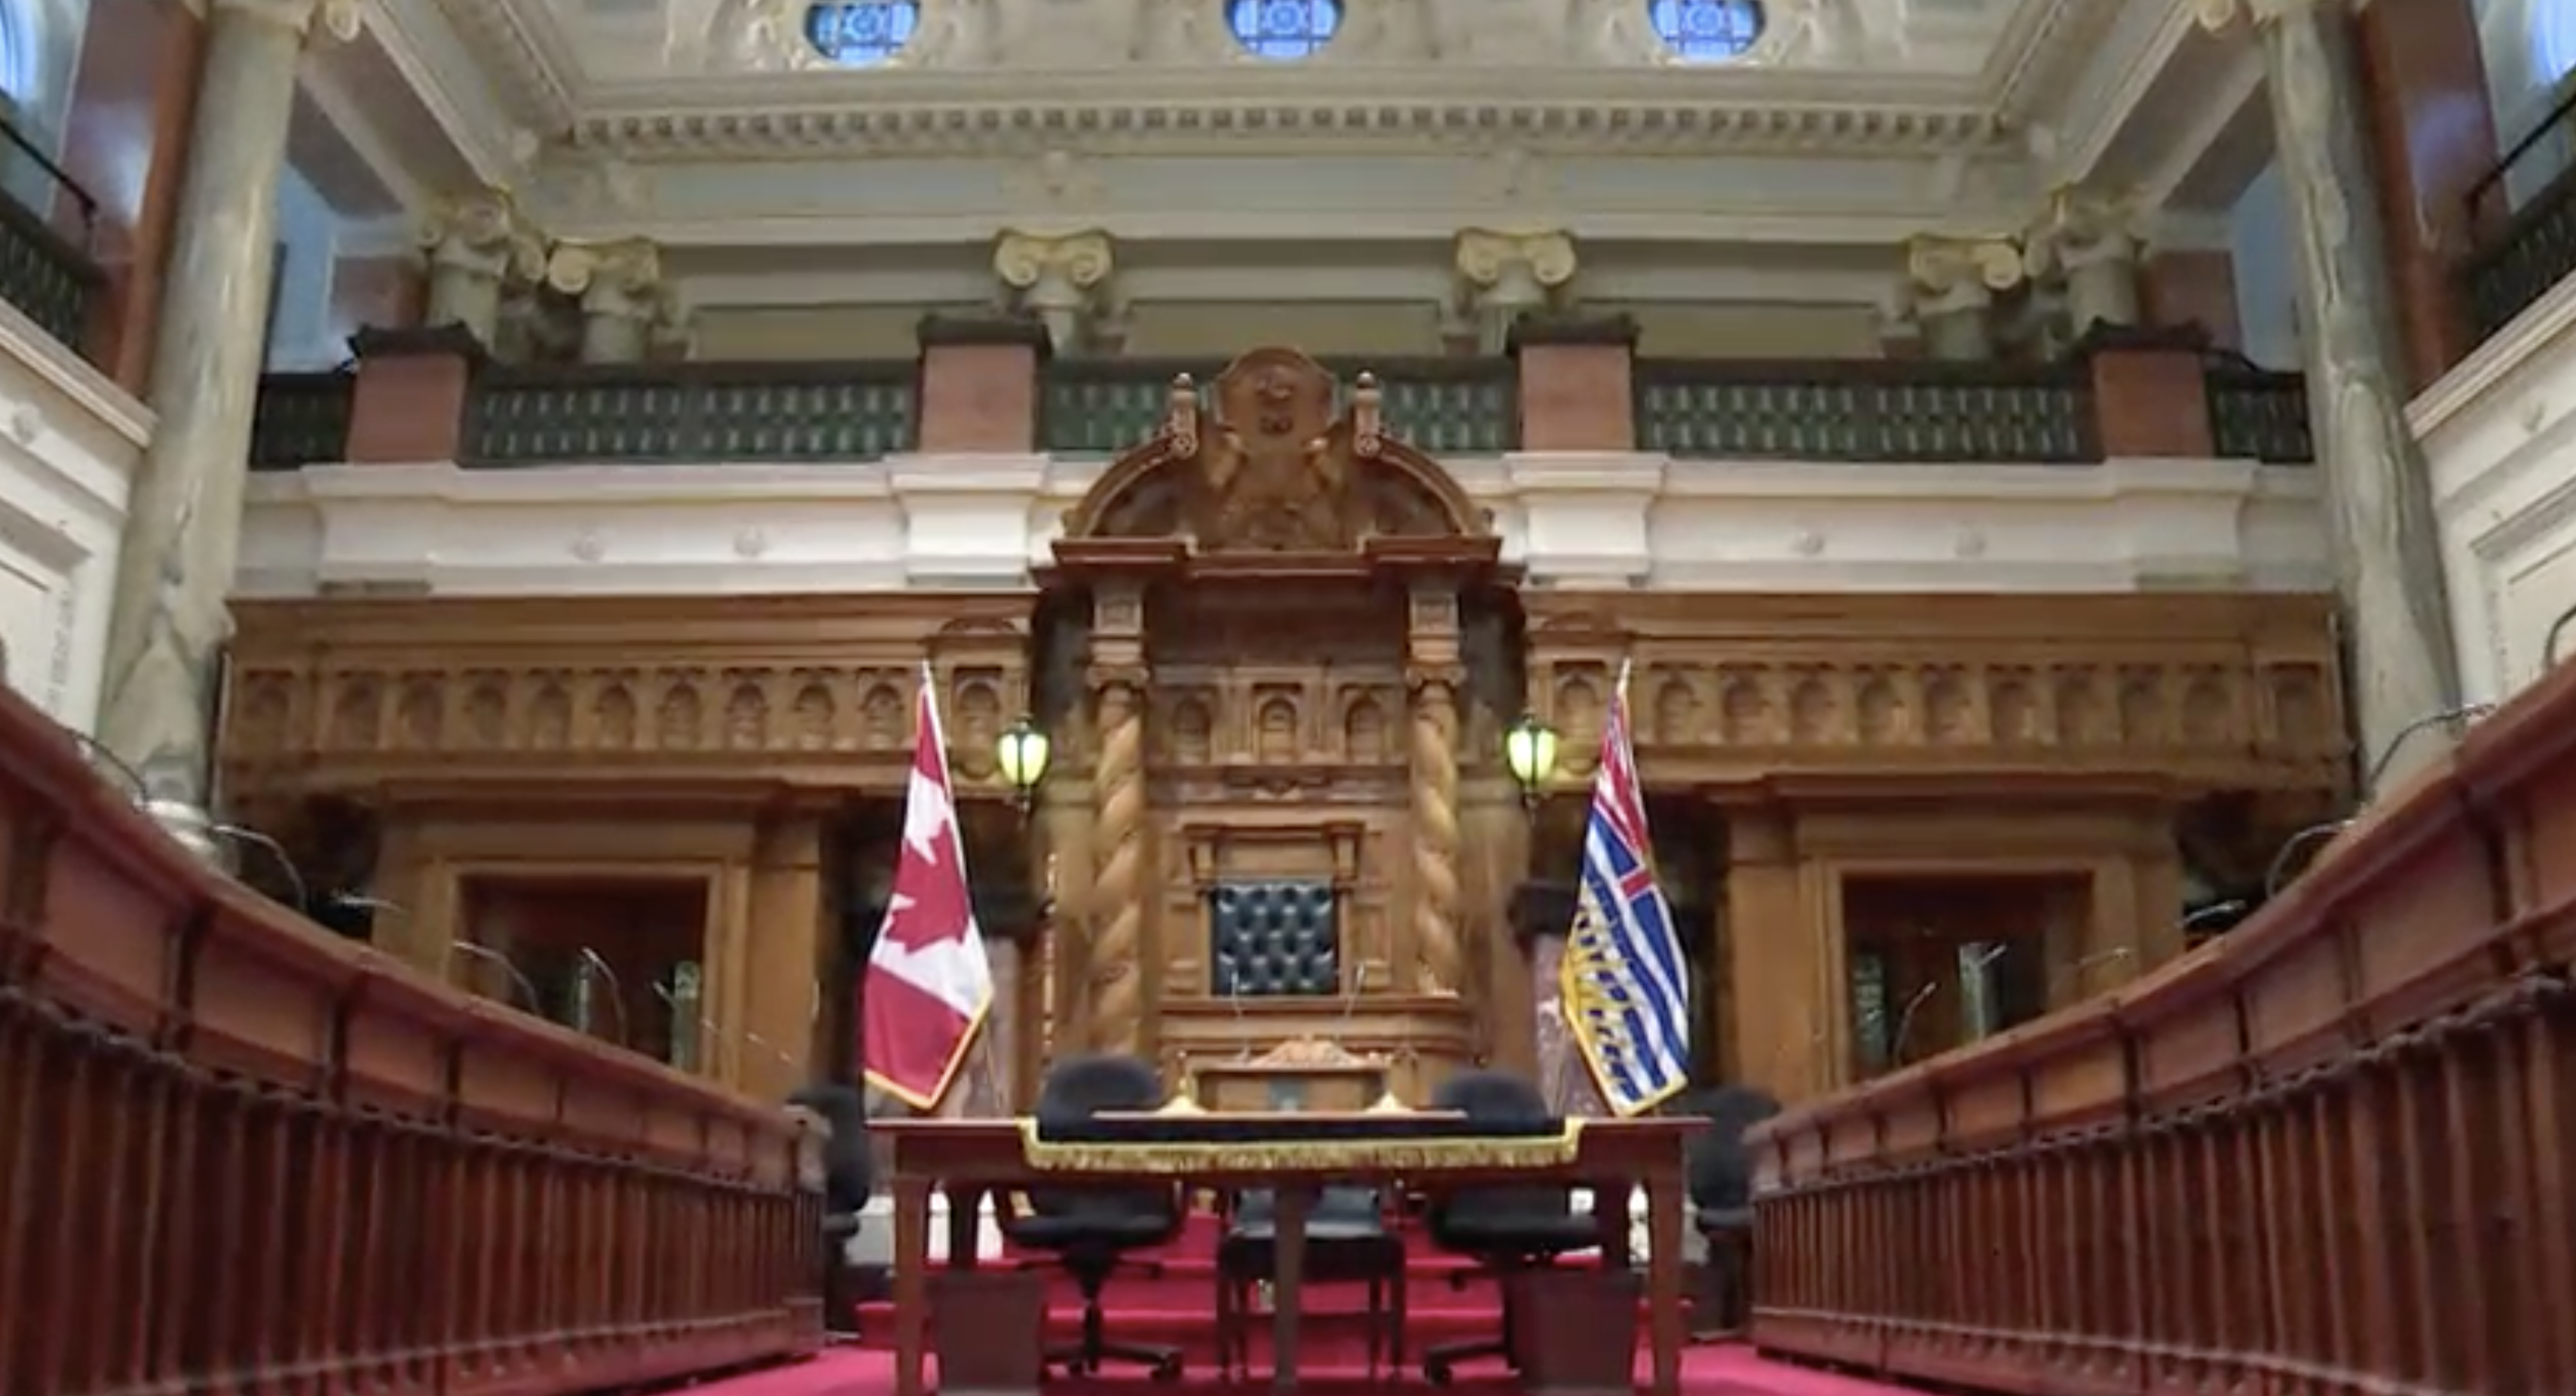 charbonneau – b.c. government offers help to opposition in drafting